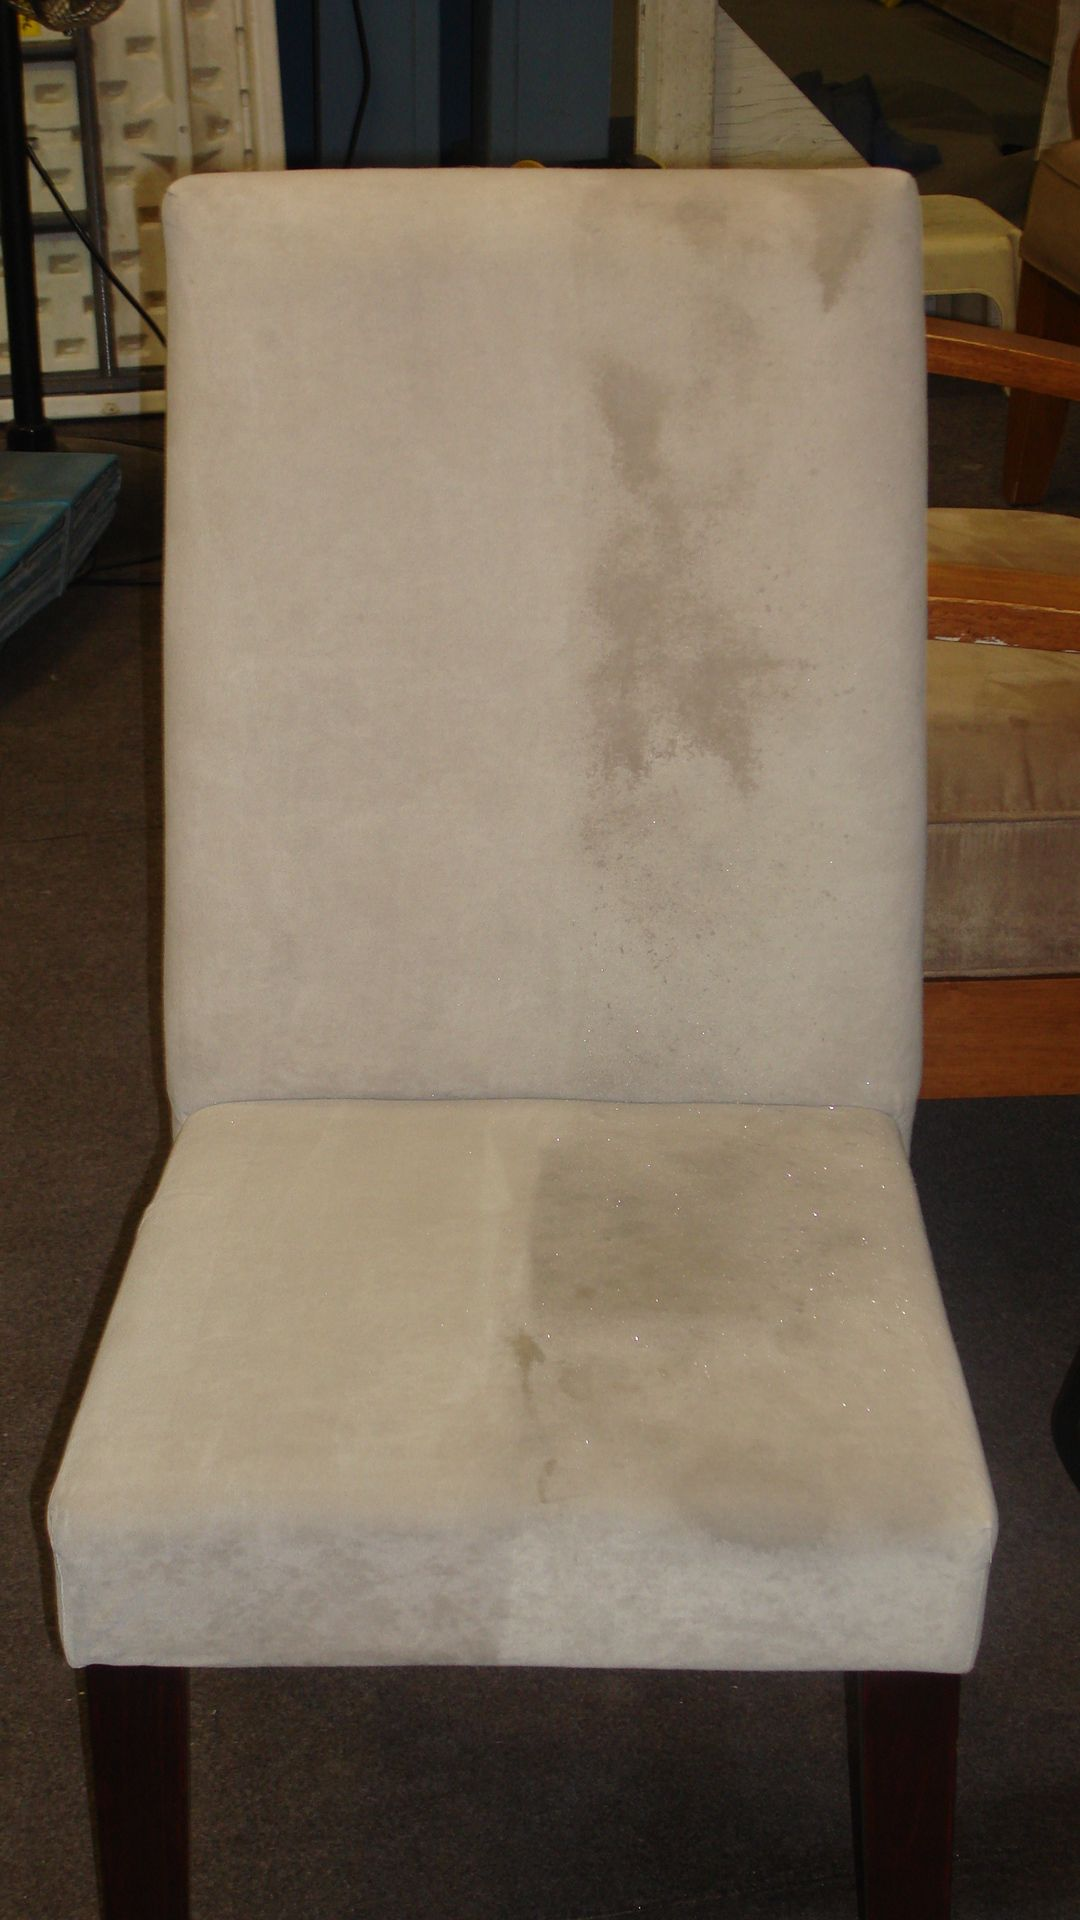 Upholstery Cleaning Services Red Deer | Upholstery Cleaning